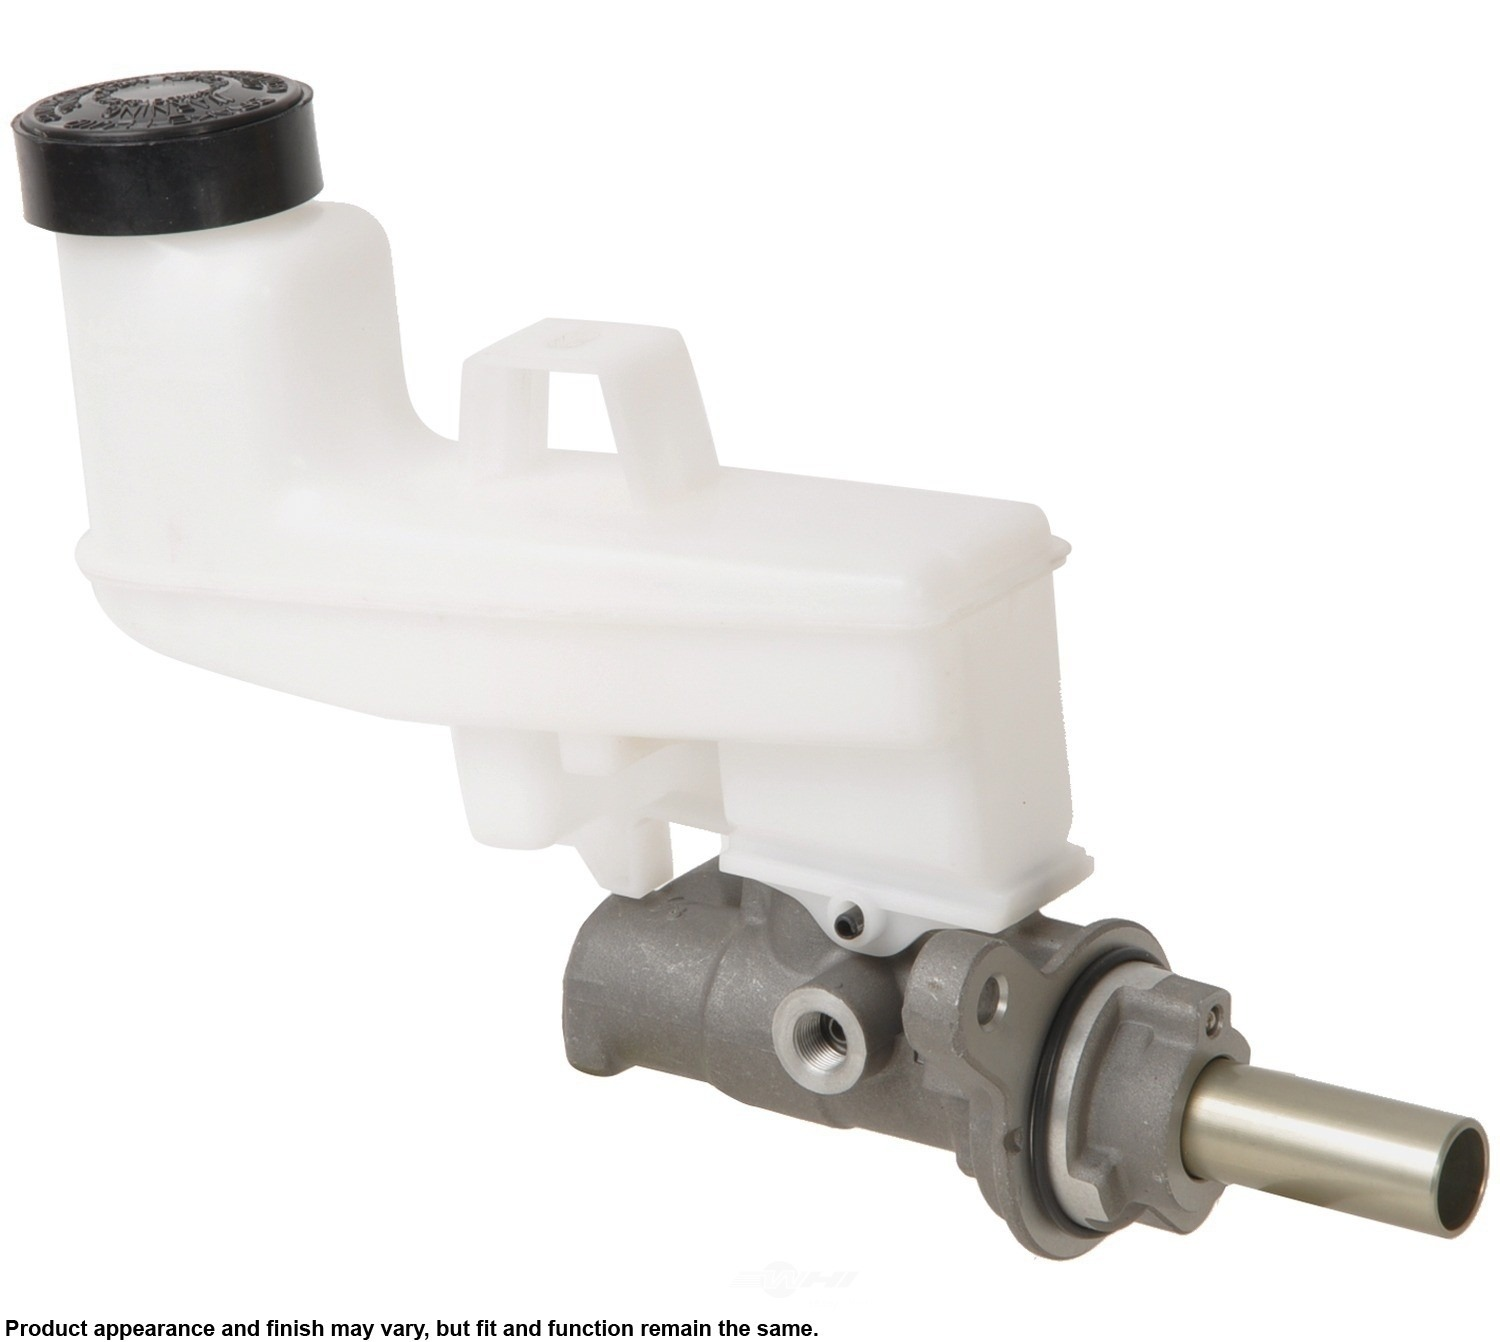 CARDONE NEW - Master Cylinder - A1S 13-4663